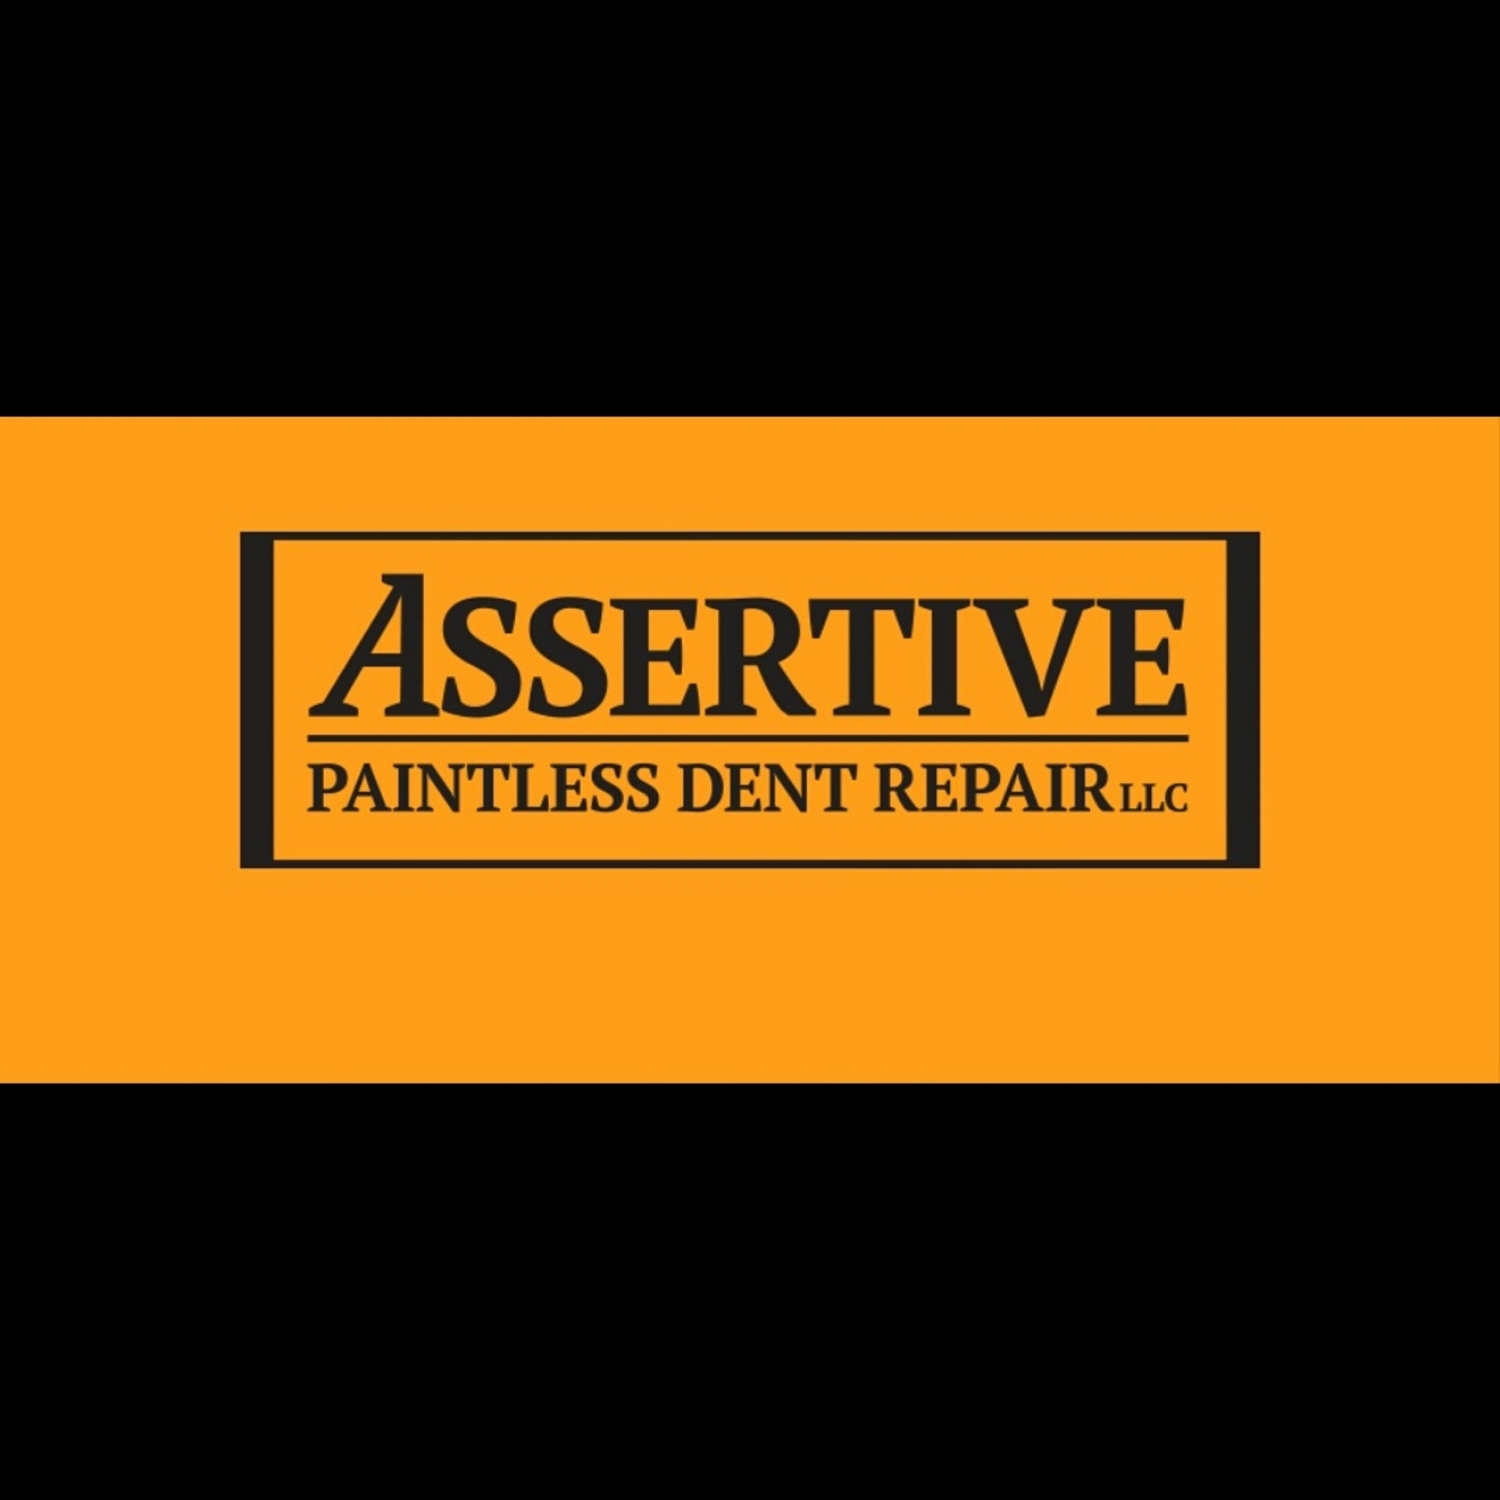 Assertive Paintless Dent Repair LLC